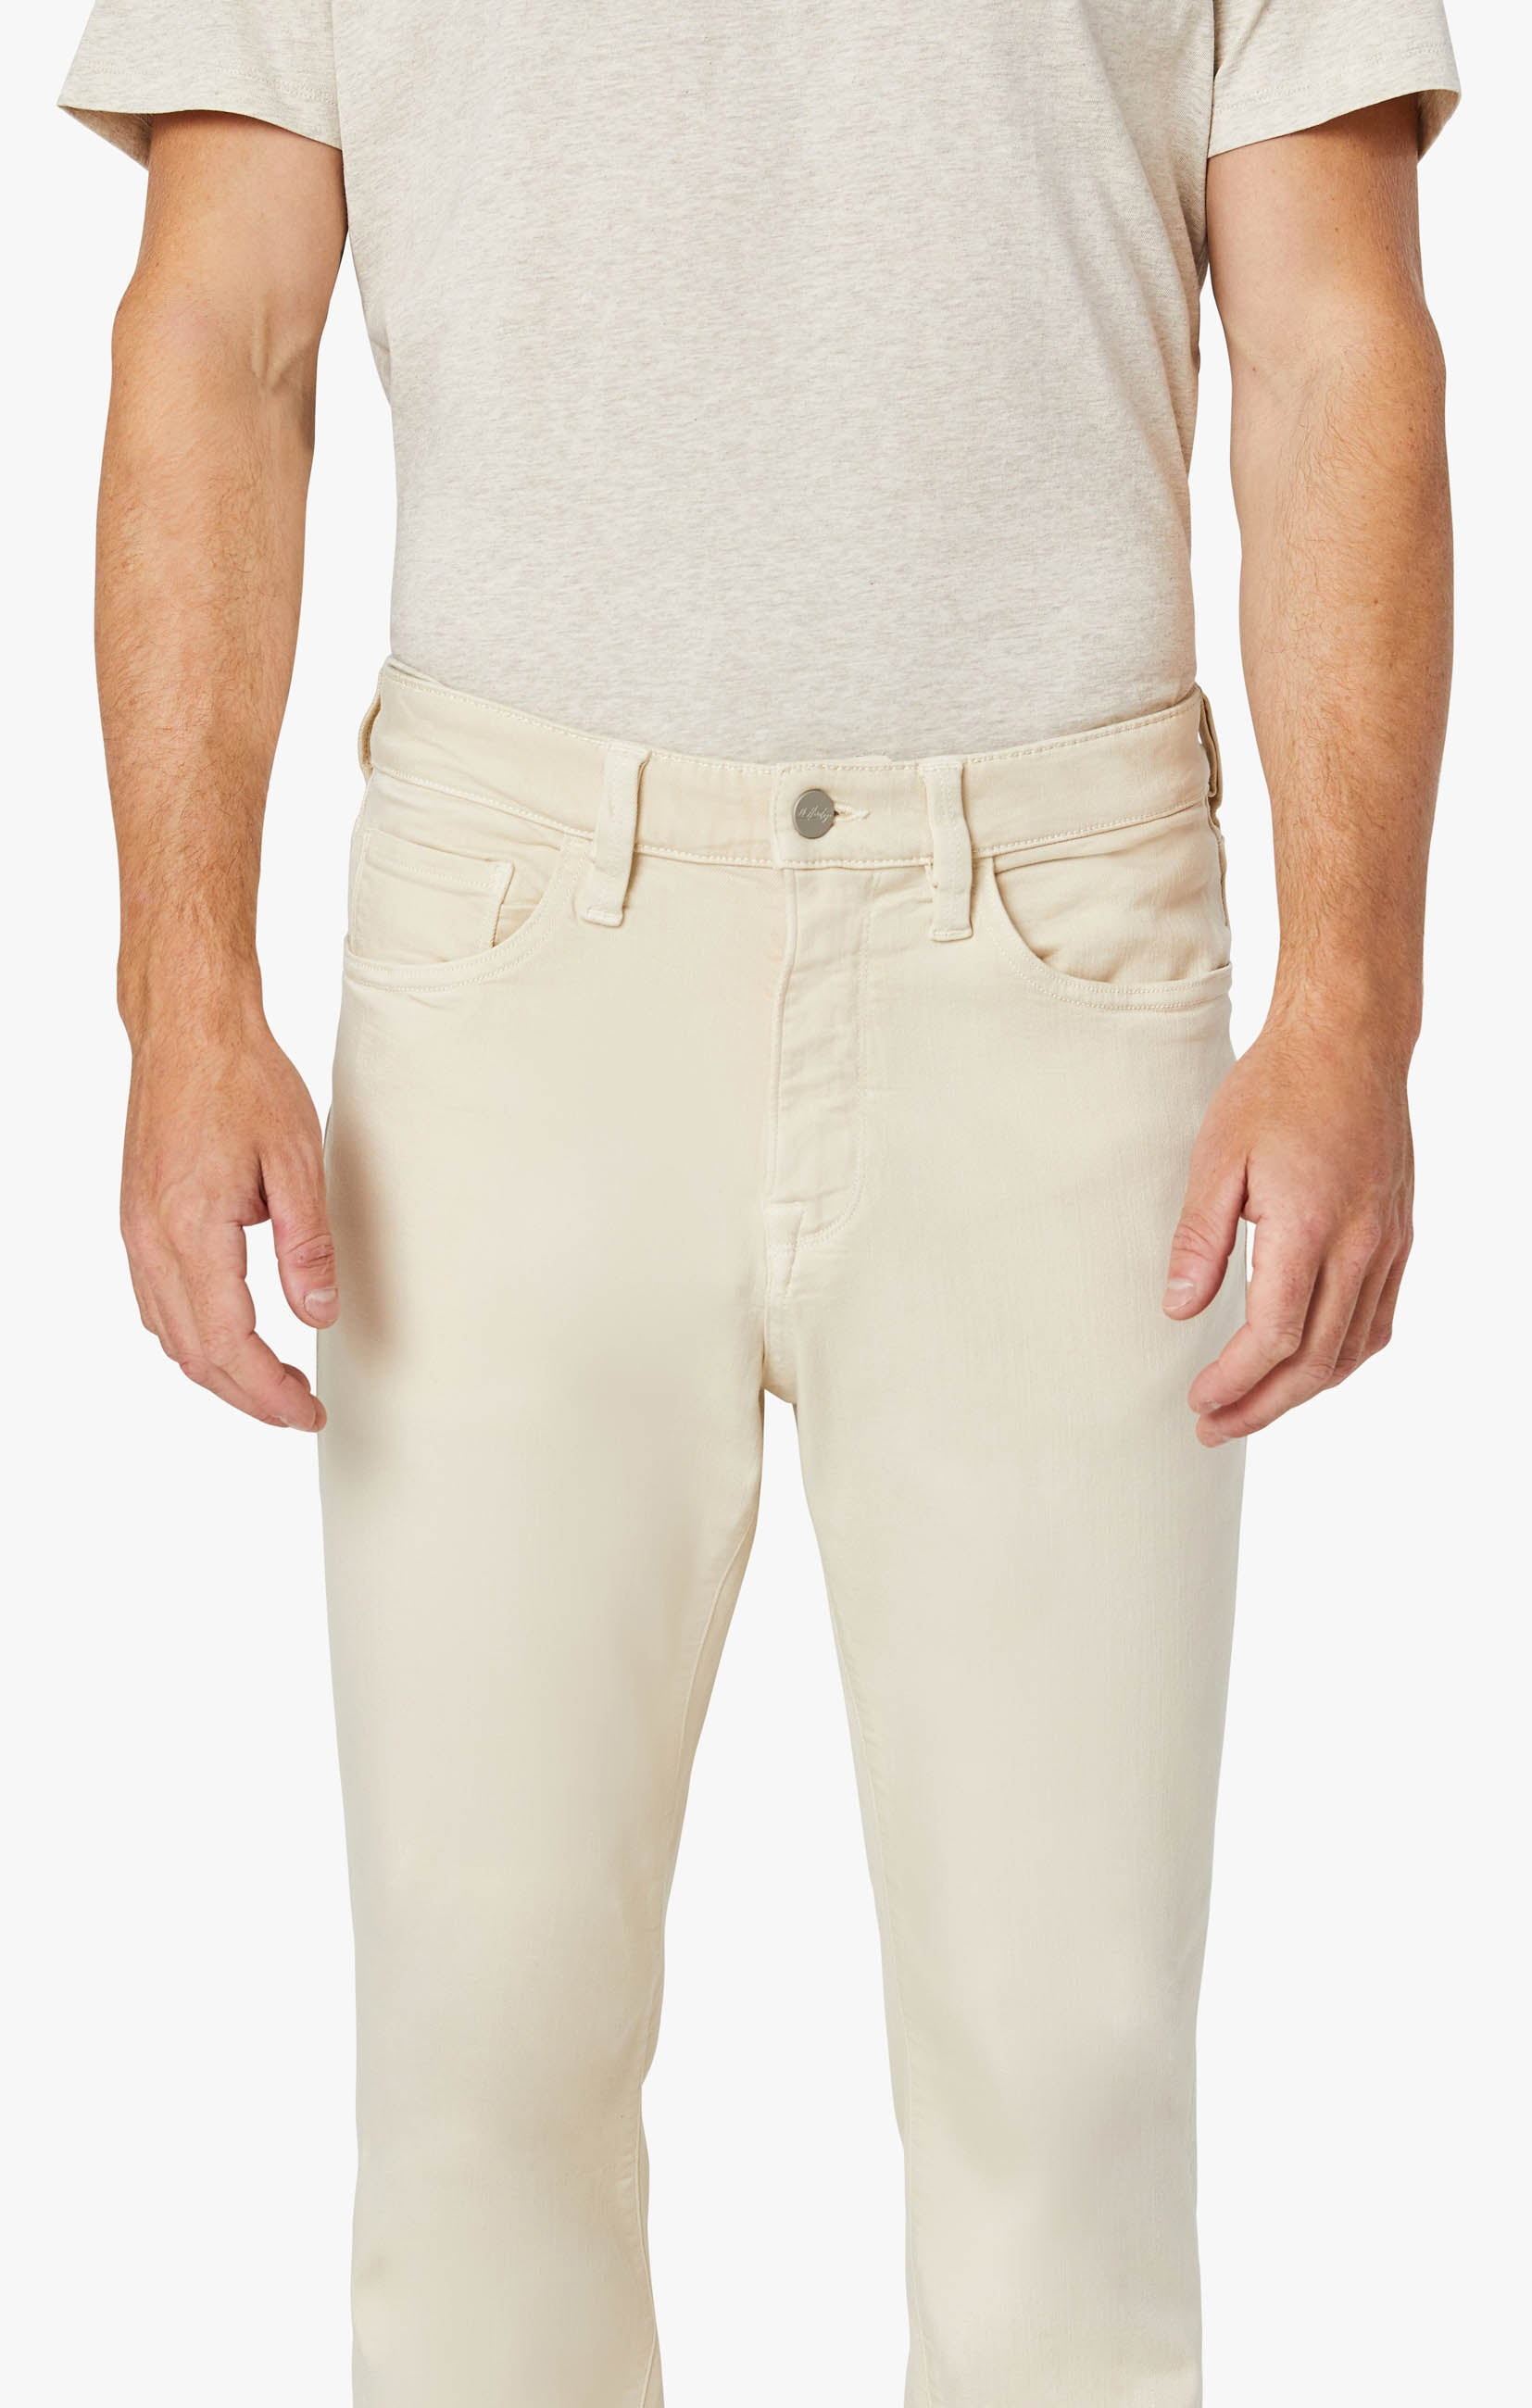 Charisma Relaxed Straight Pants In Natural Comfort Image 6